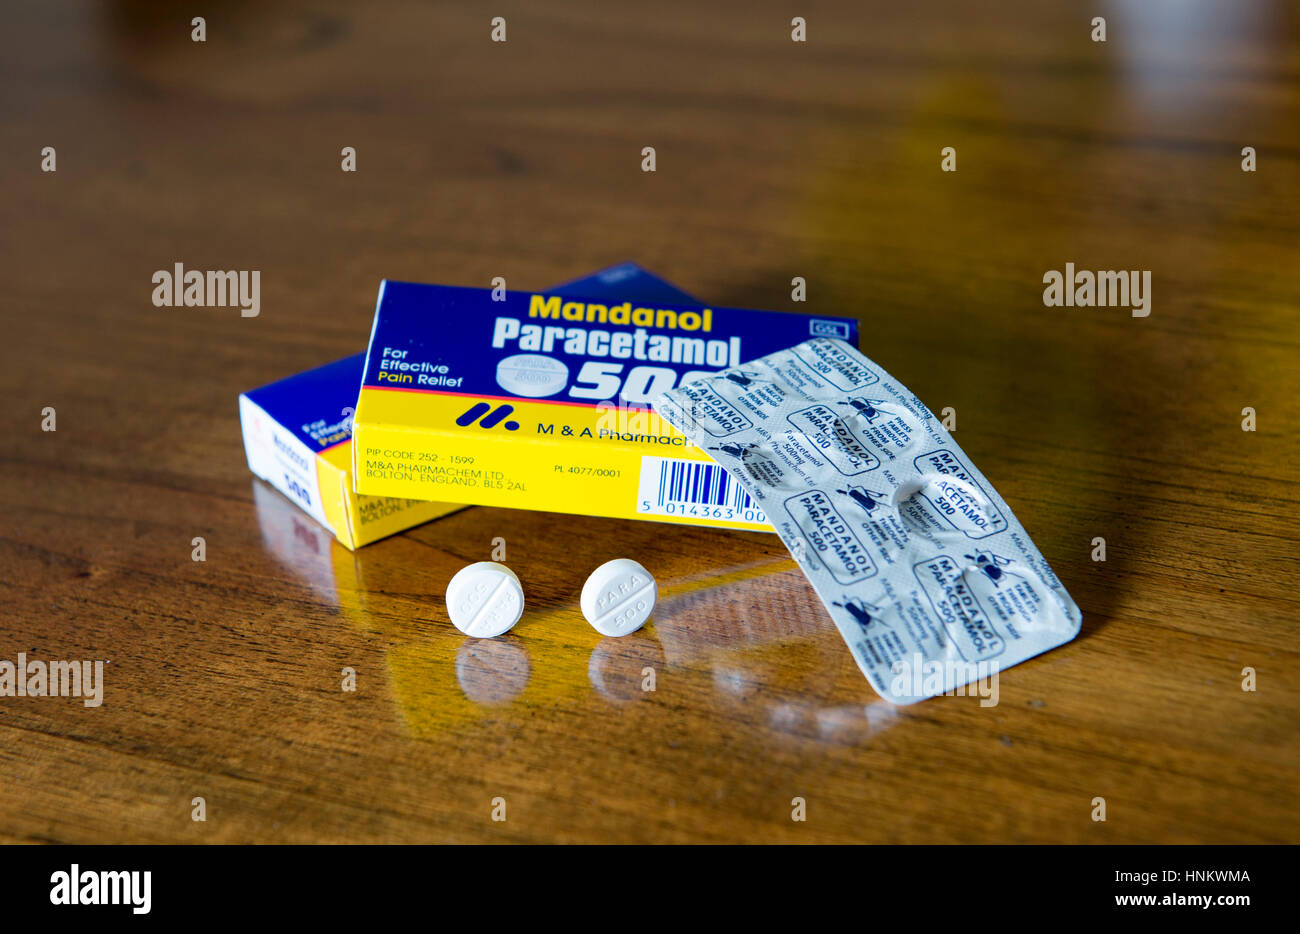 Mandanol Paracetamol tablets for pain relief bought over the counter at pharmacist Photograph taken by Simon Dack - Stock Image